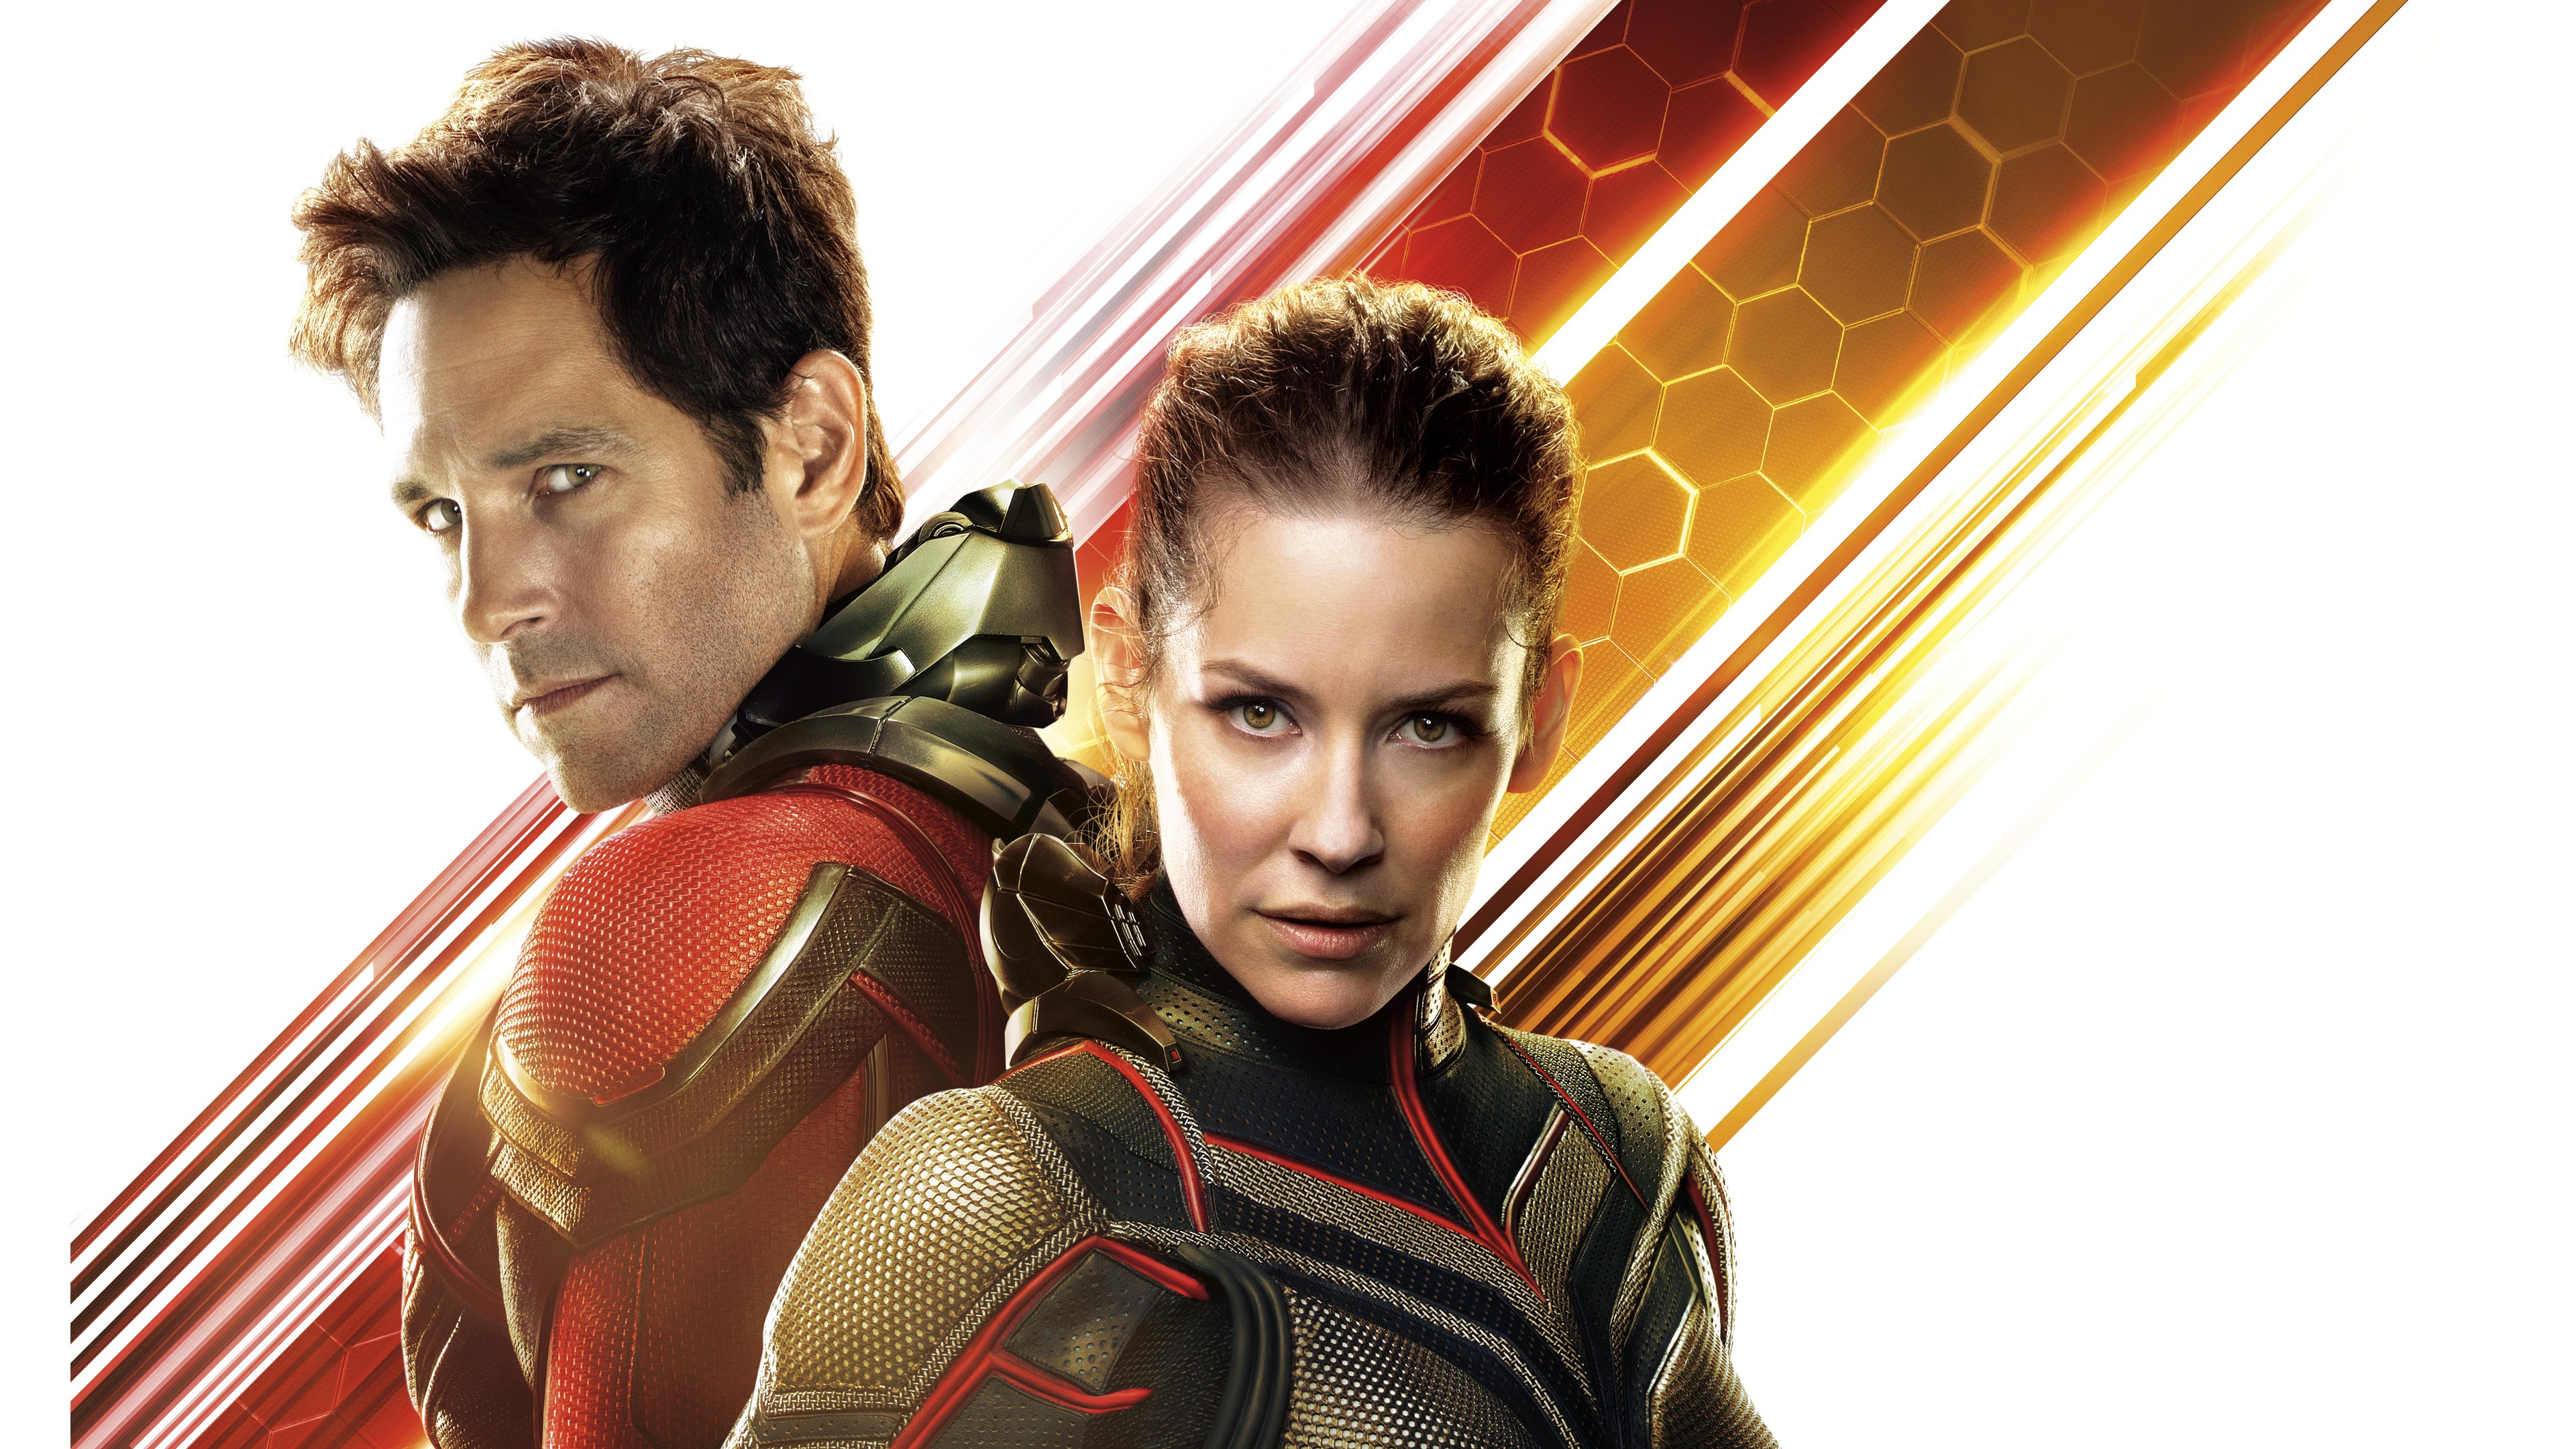 ant man and the wasp movie 12k 1537645229 - Ant Man And The Wasp Movie 12k - movies wallpapers, hd-wallpapers, ant man wallpapers, ant man and the wasp wallpapers, 8k wallpapers, 5k wallpapers, 4k-wallpapers, 2018-movies-wallpapers, 12k wallpapers, 10k wallpapers